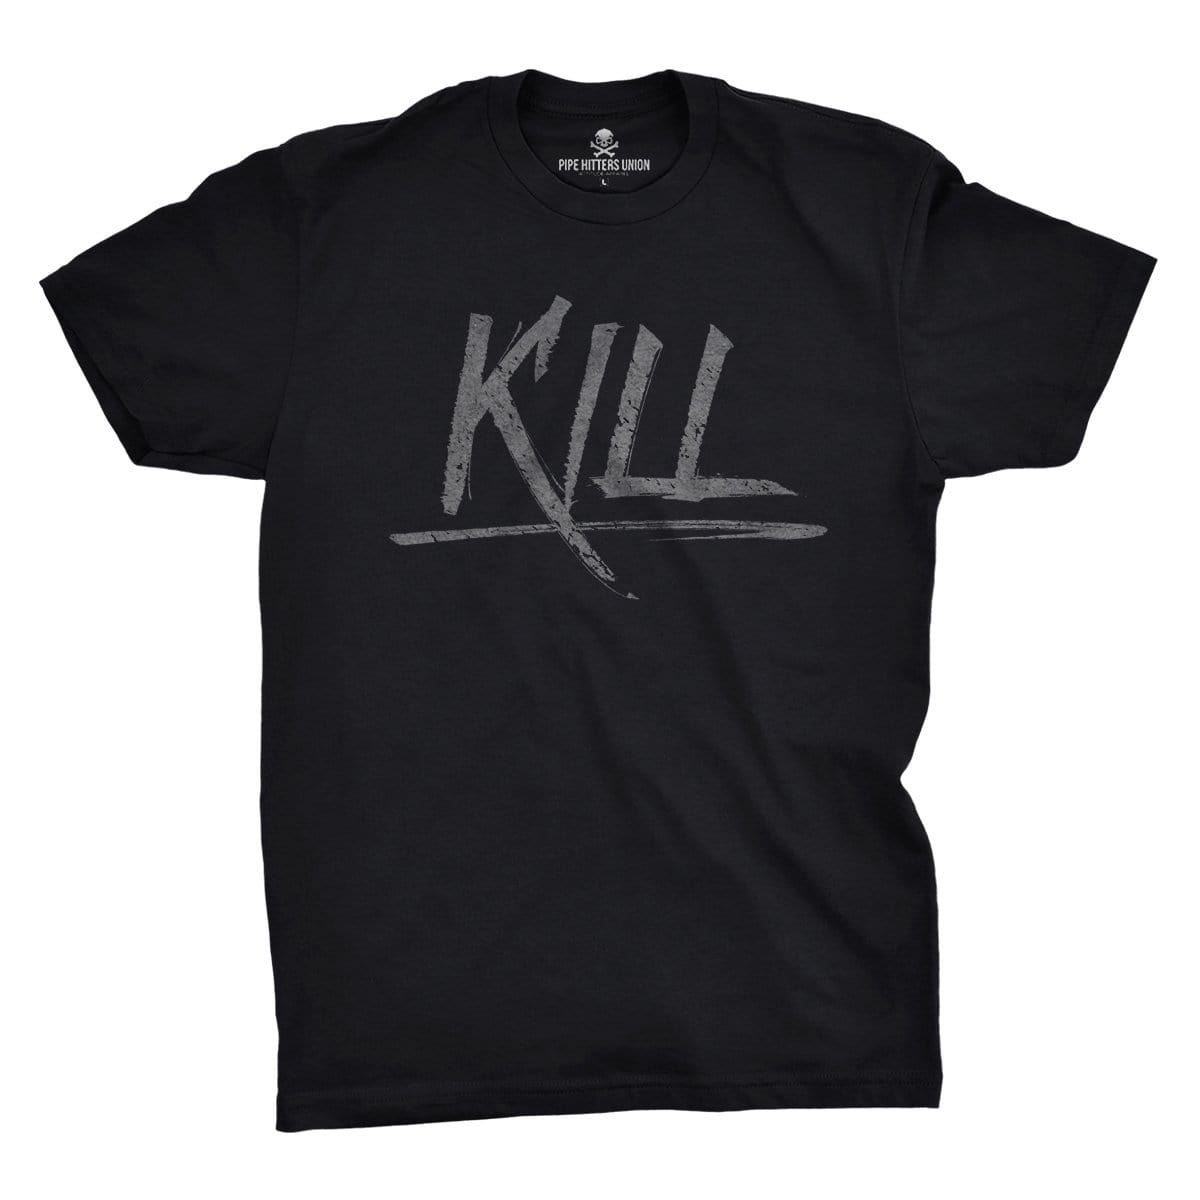 Kill - Black - T-Shirts - Pipe Hitters Union